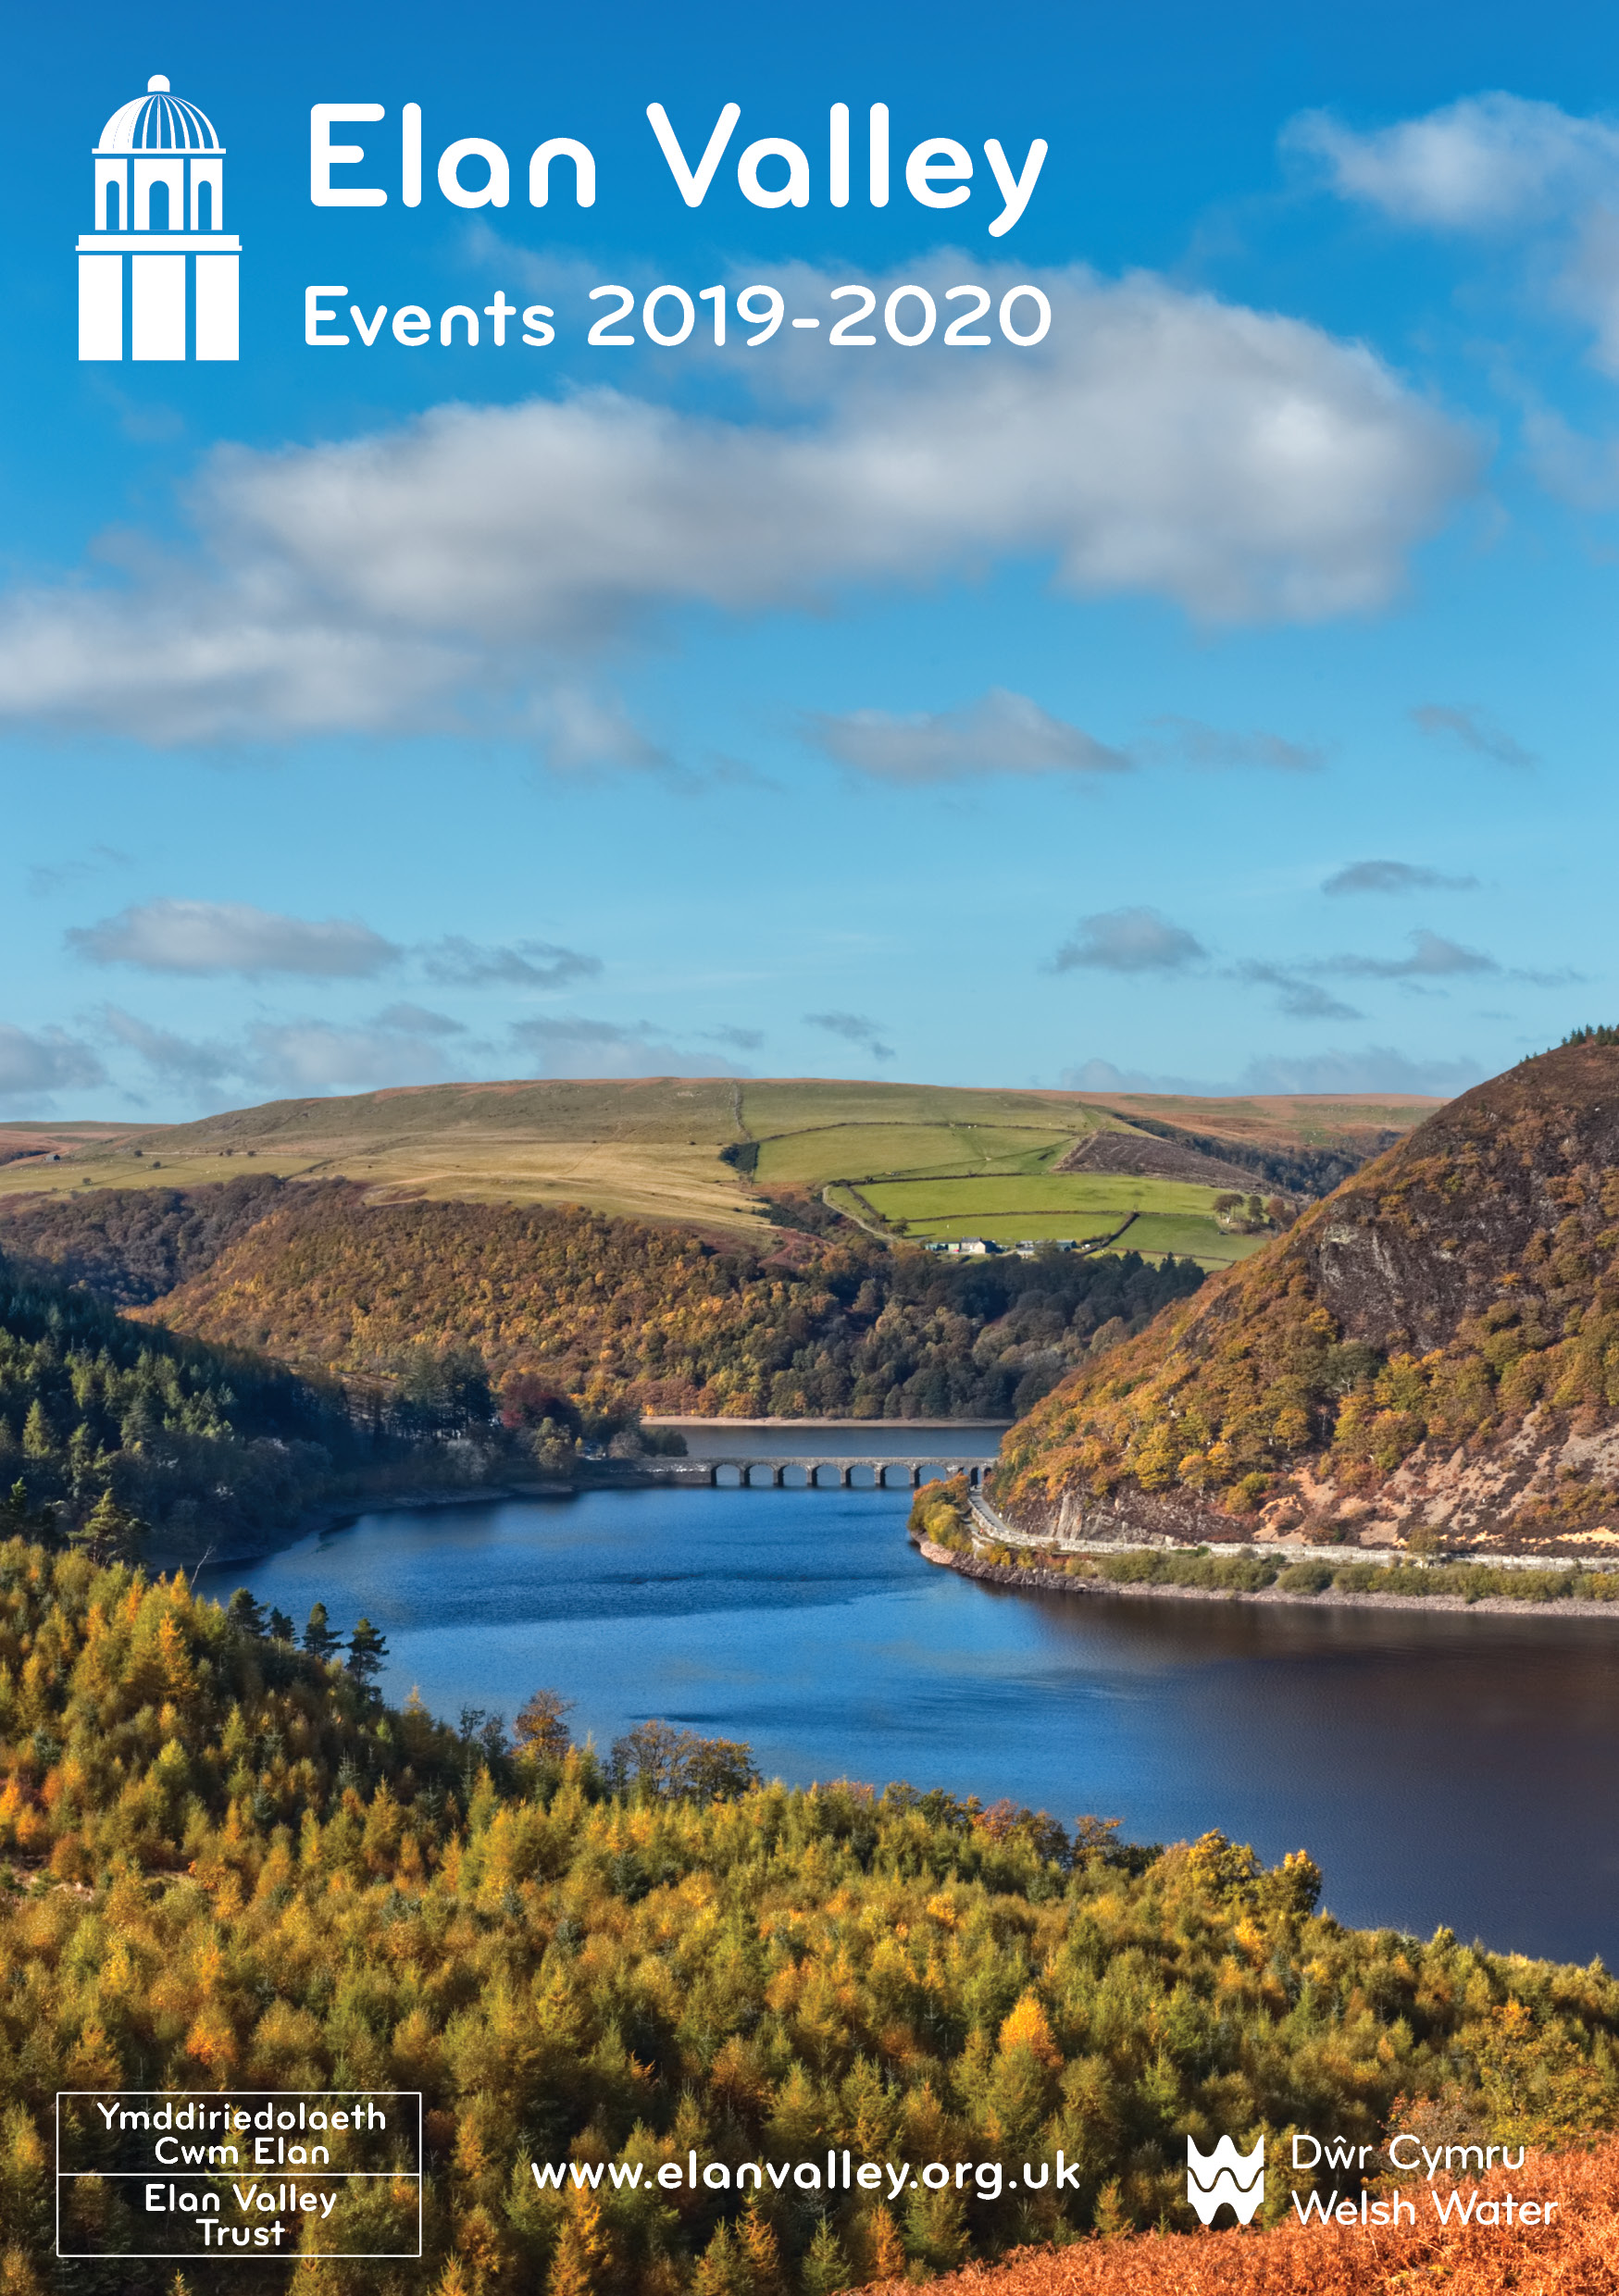 Elan Valley Events 2019-2020